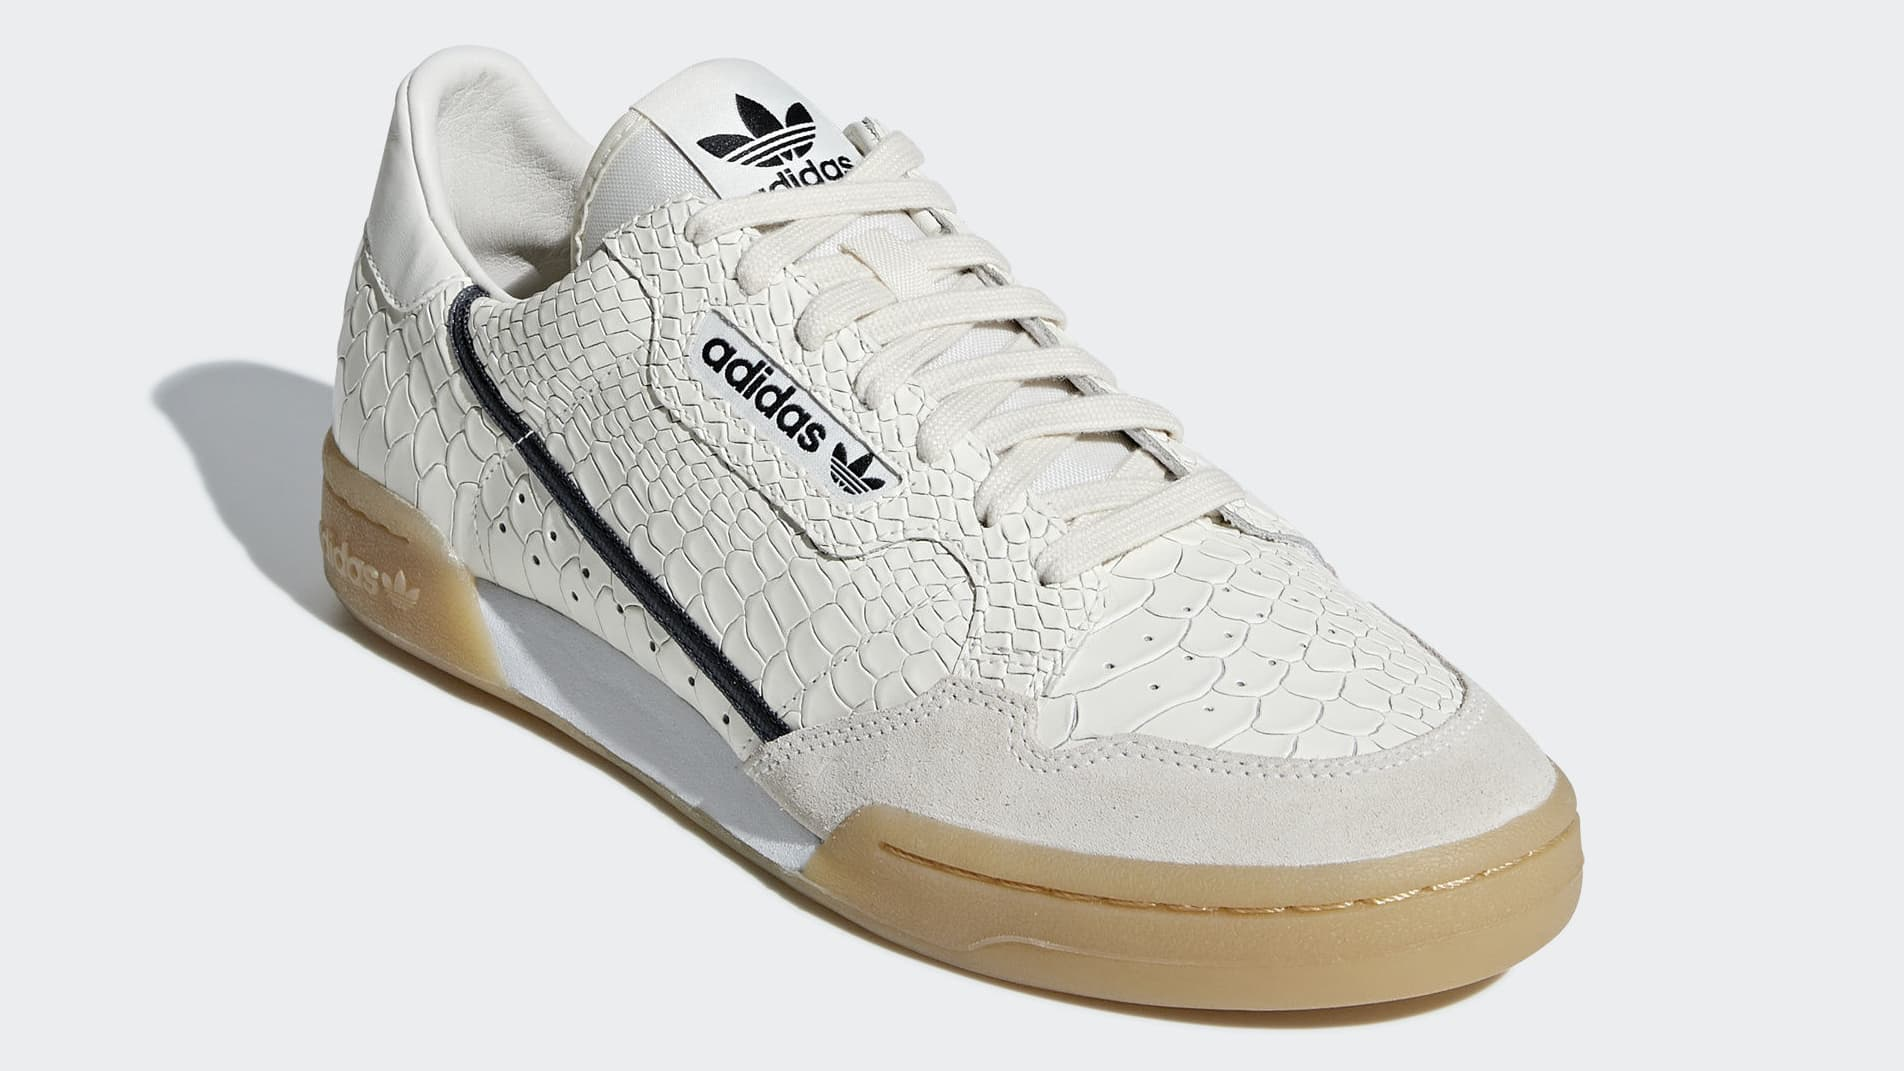 wholesale dealer 0f6e2 42b03 The post adidas  Continental 80 s Returns in Luxurious Python Leather This  Fall appeared first on JustFreshKicks.